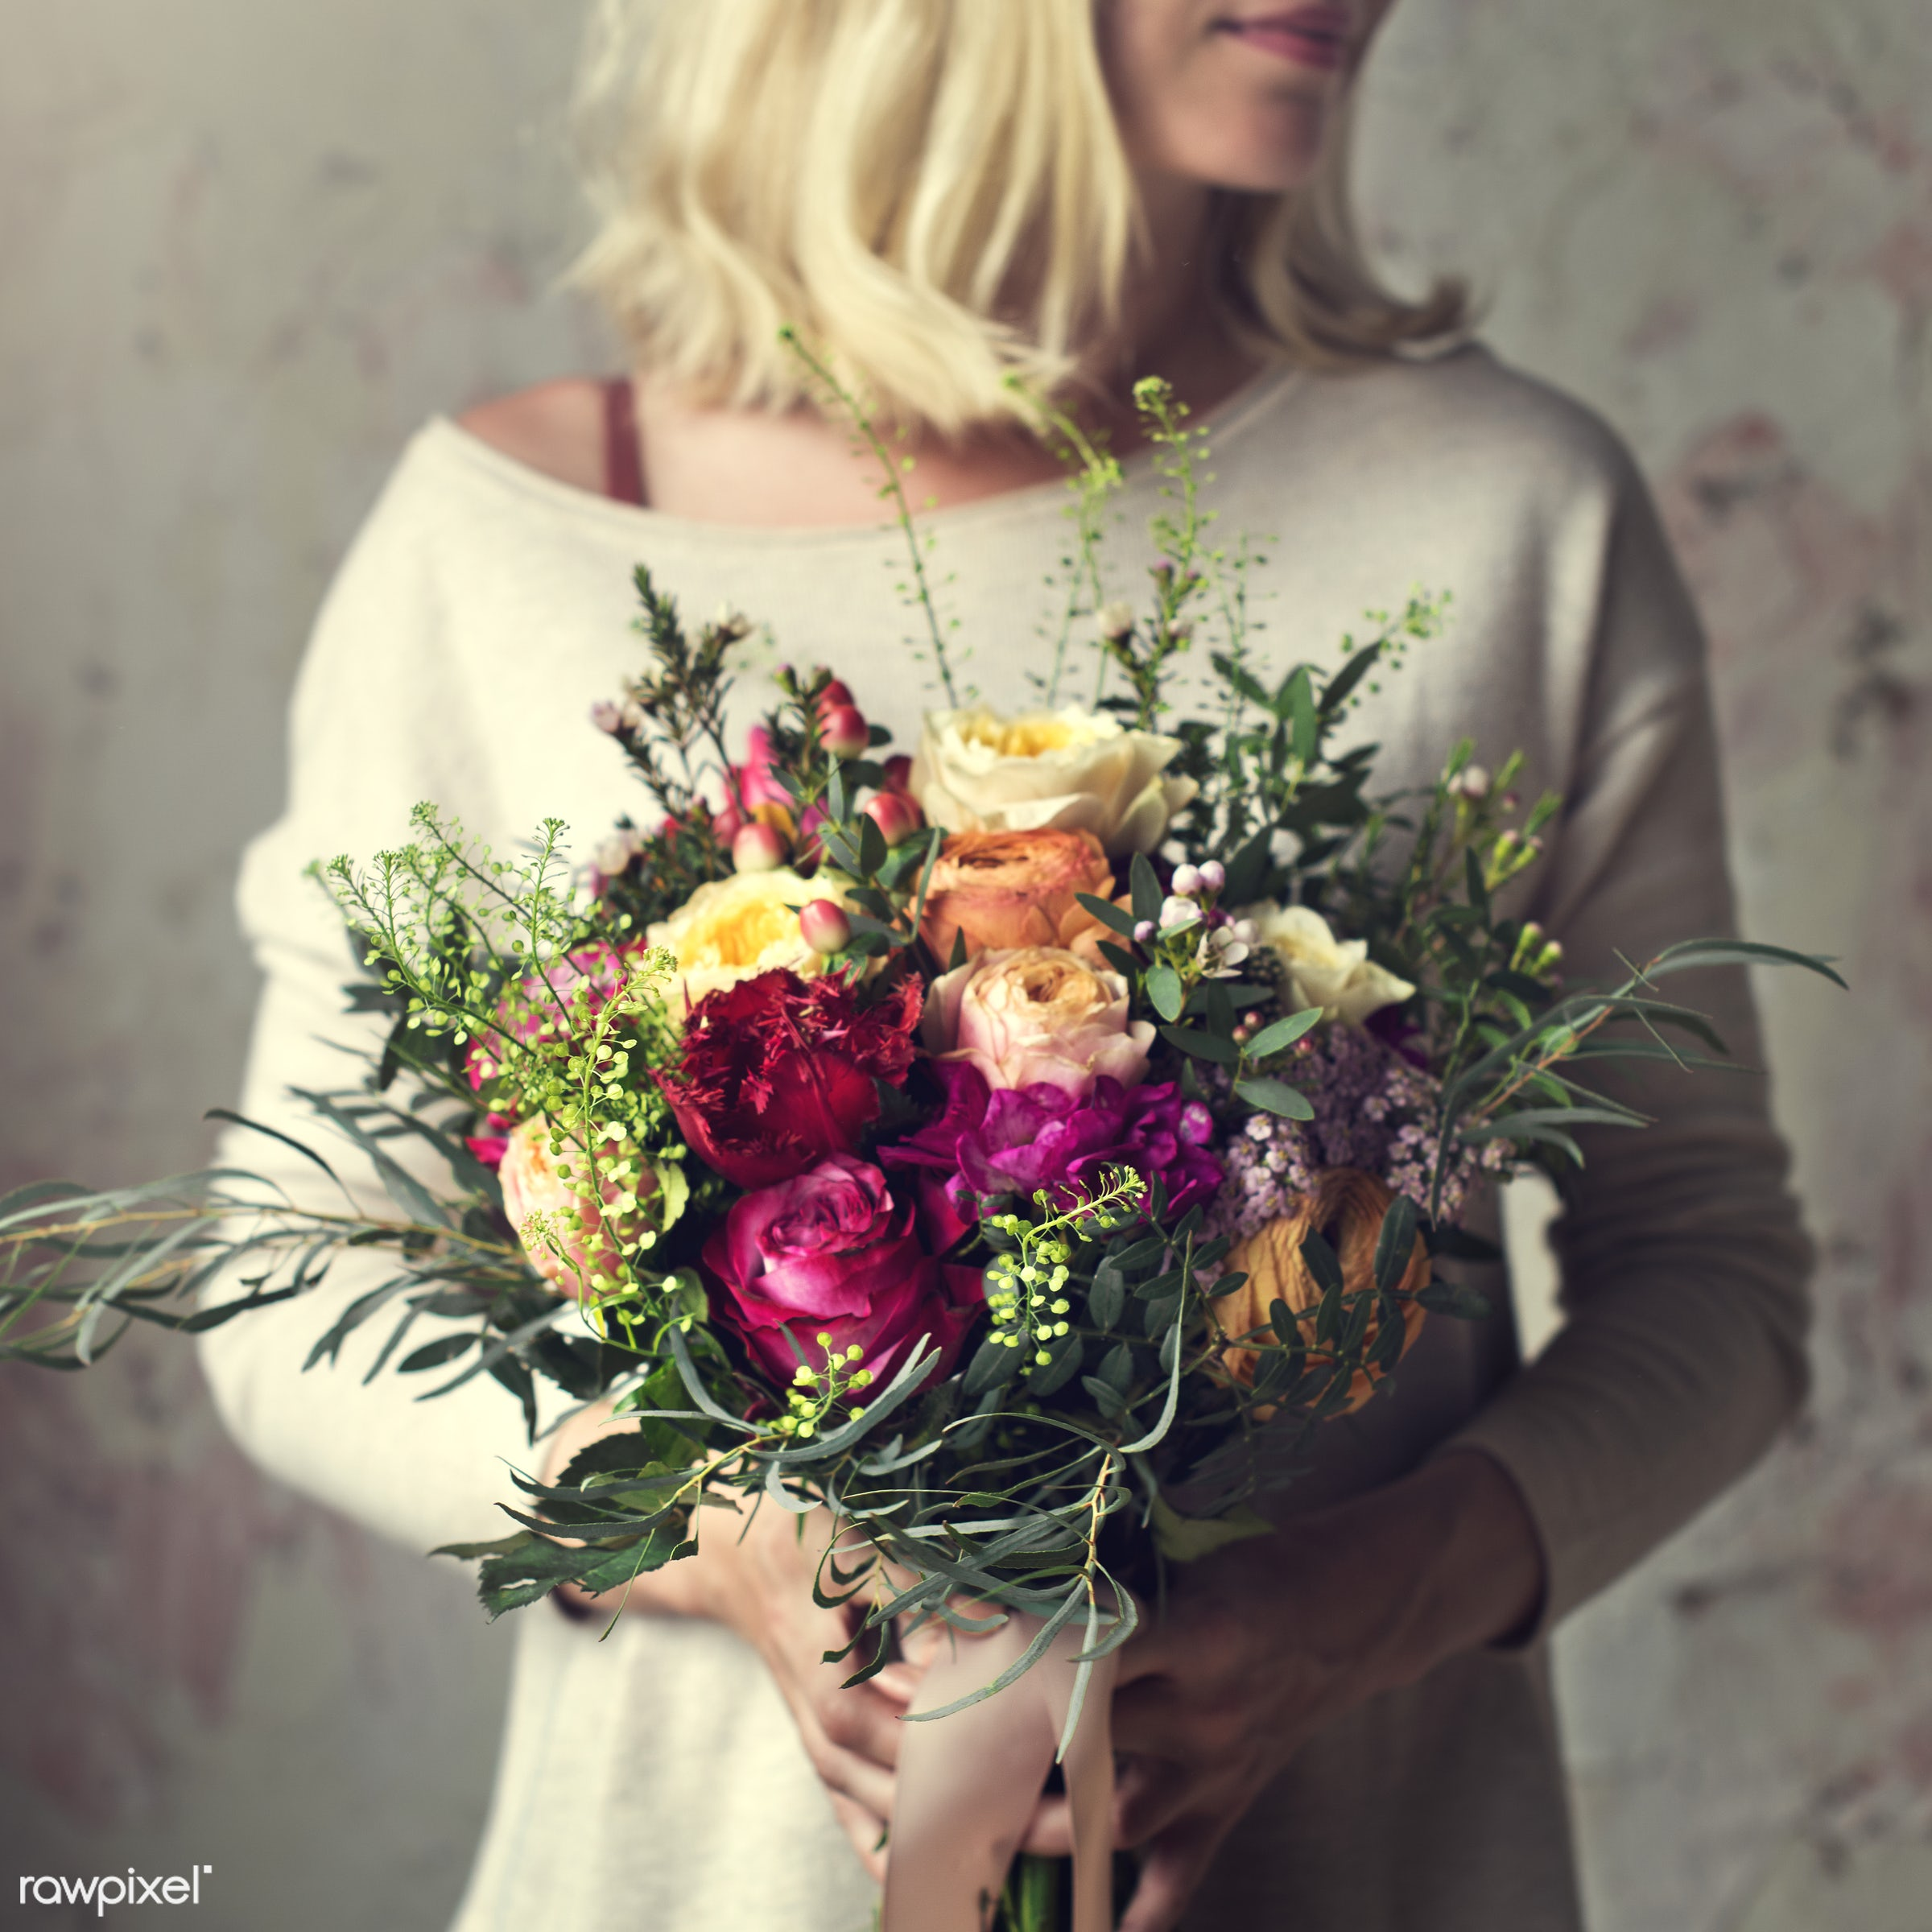 bouquet, person, detail, decorative, colorful, holding, diverse, events, plants, show, spring, people, blossom, love, decor...